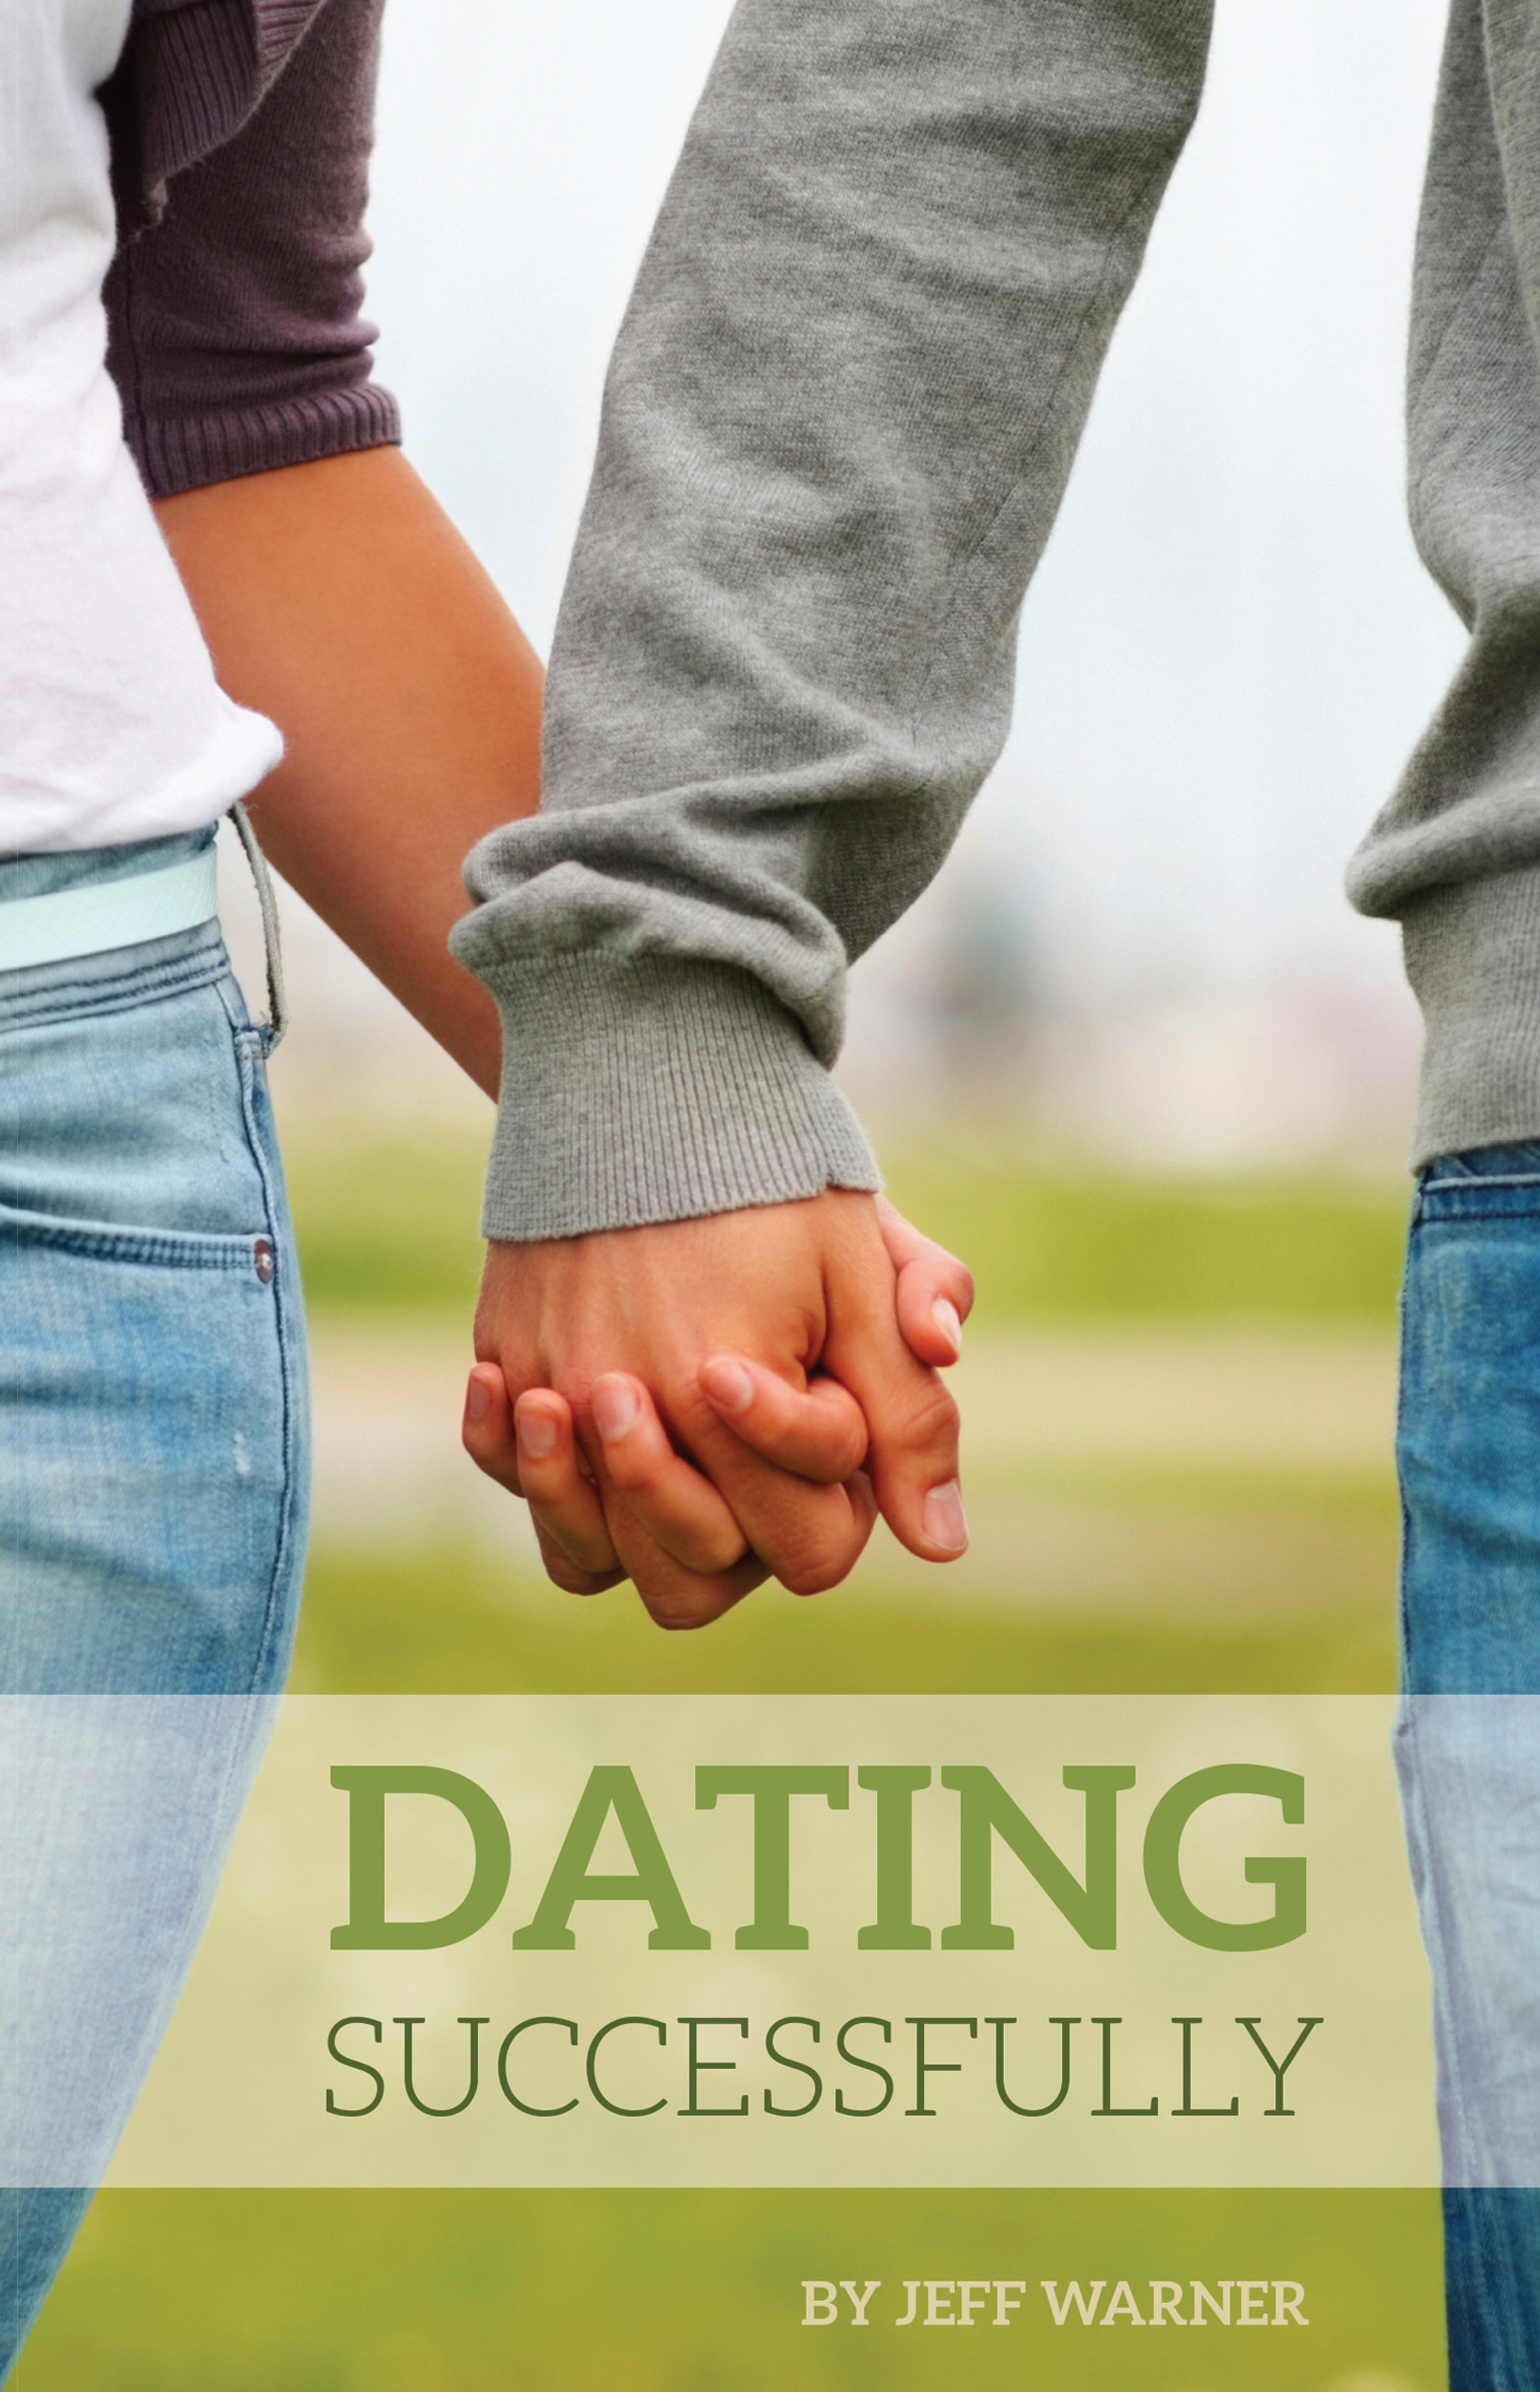 Dating Front Cover - 9781600343575_cov.jpg